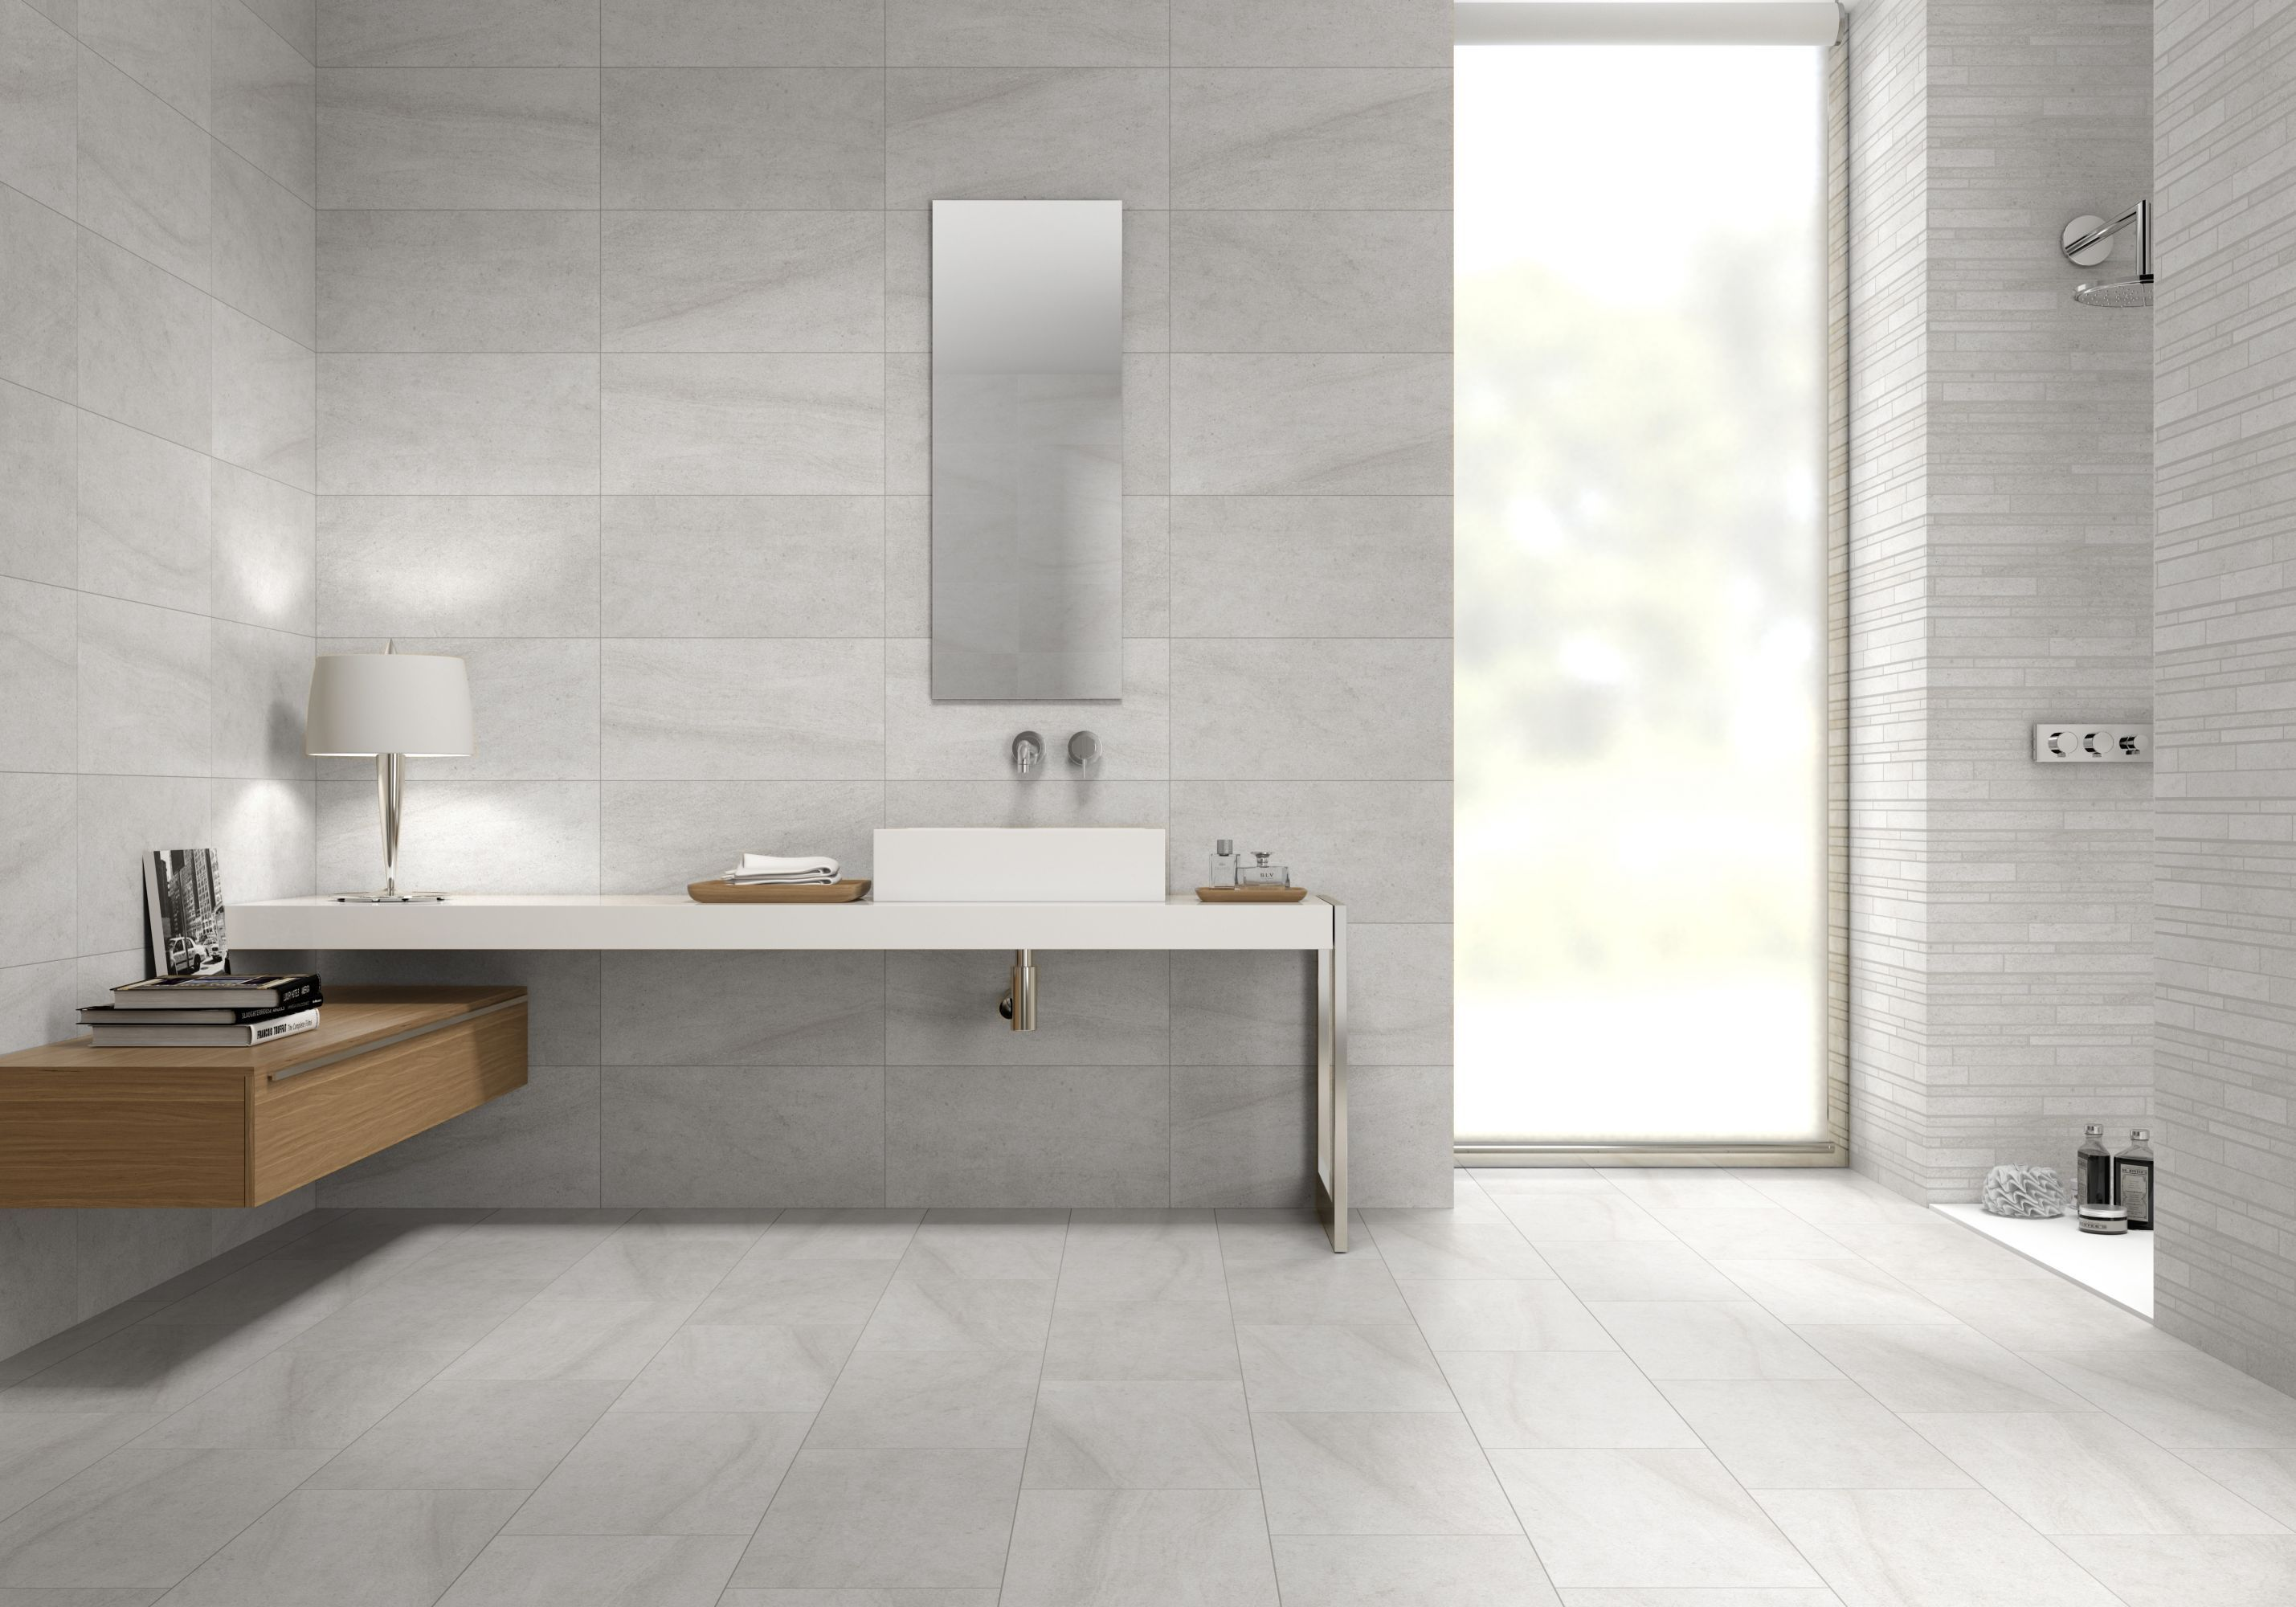 600 x 300 tile patterns google search bathrooms for Flooring tiles for bathroom